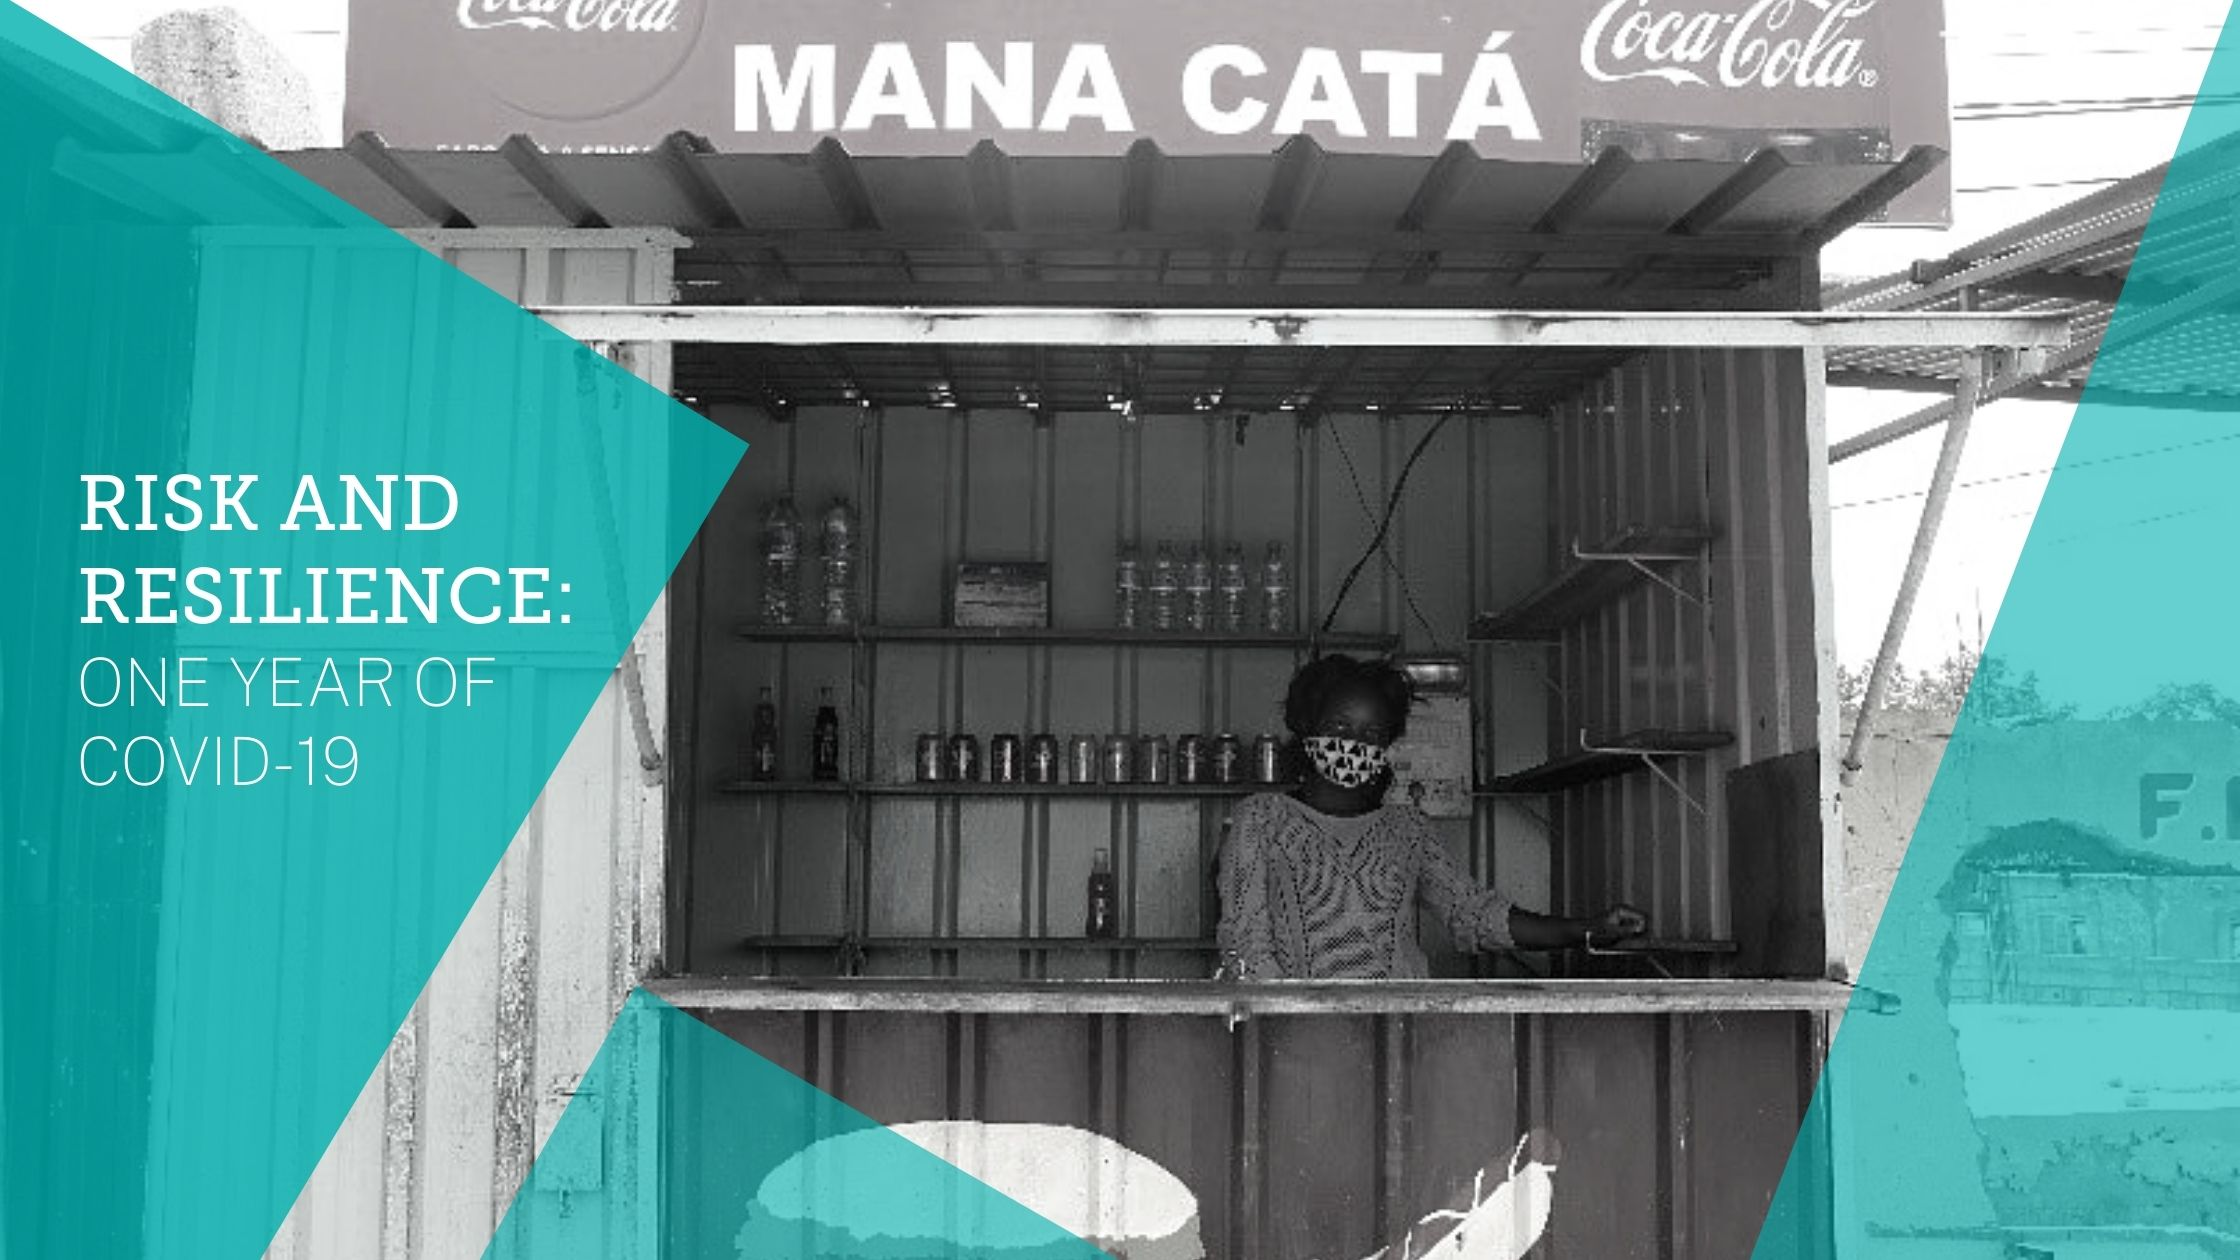 Catarina Bié is a small business owner in Maputo, Mozambique.